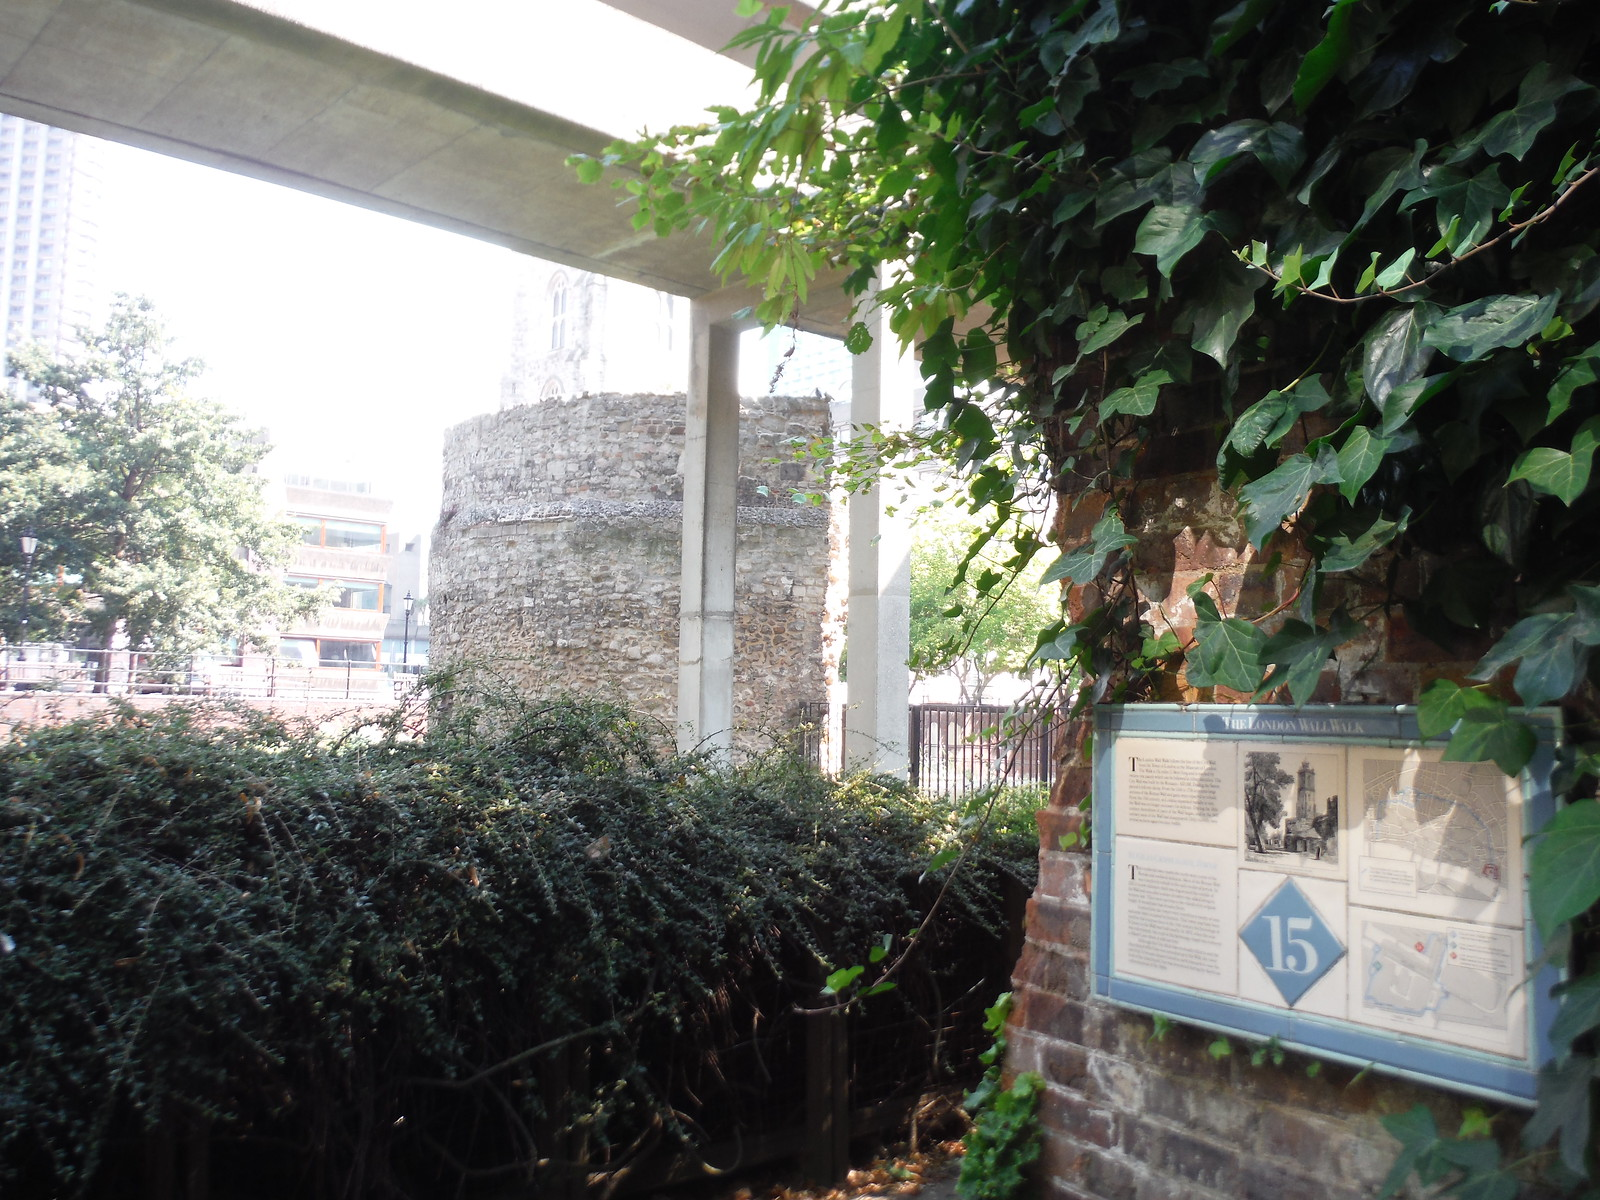 Panel 15 of the London Wall Walk, Bastion 12 in background SWC Short Walk 47 - The London Wall